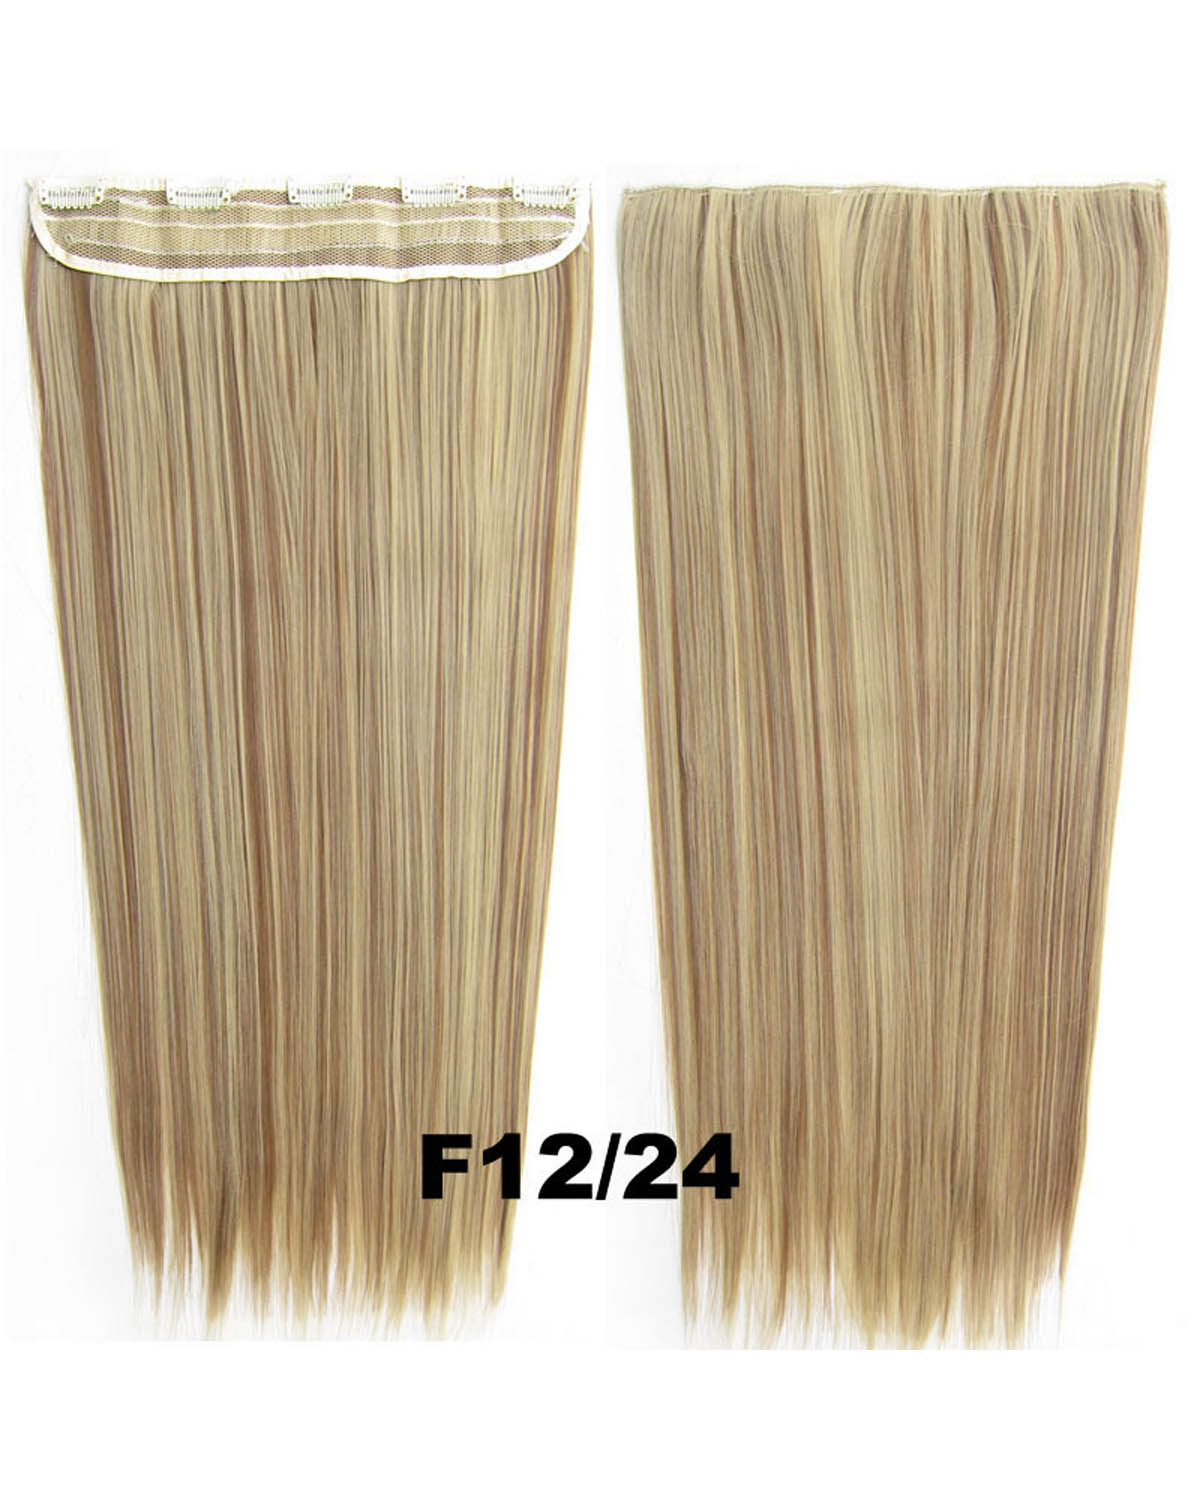 24 inch Hot-sale Straight Long One Piece 5 Clips Clip in Synthetic Hair Extension F12/24